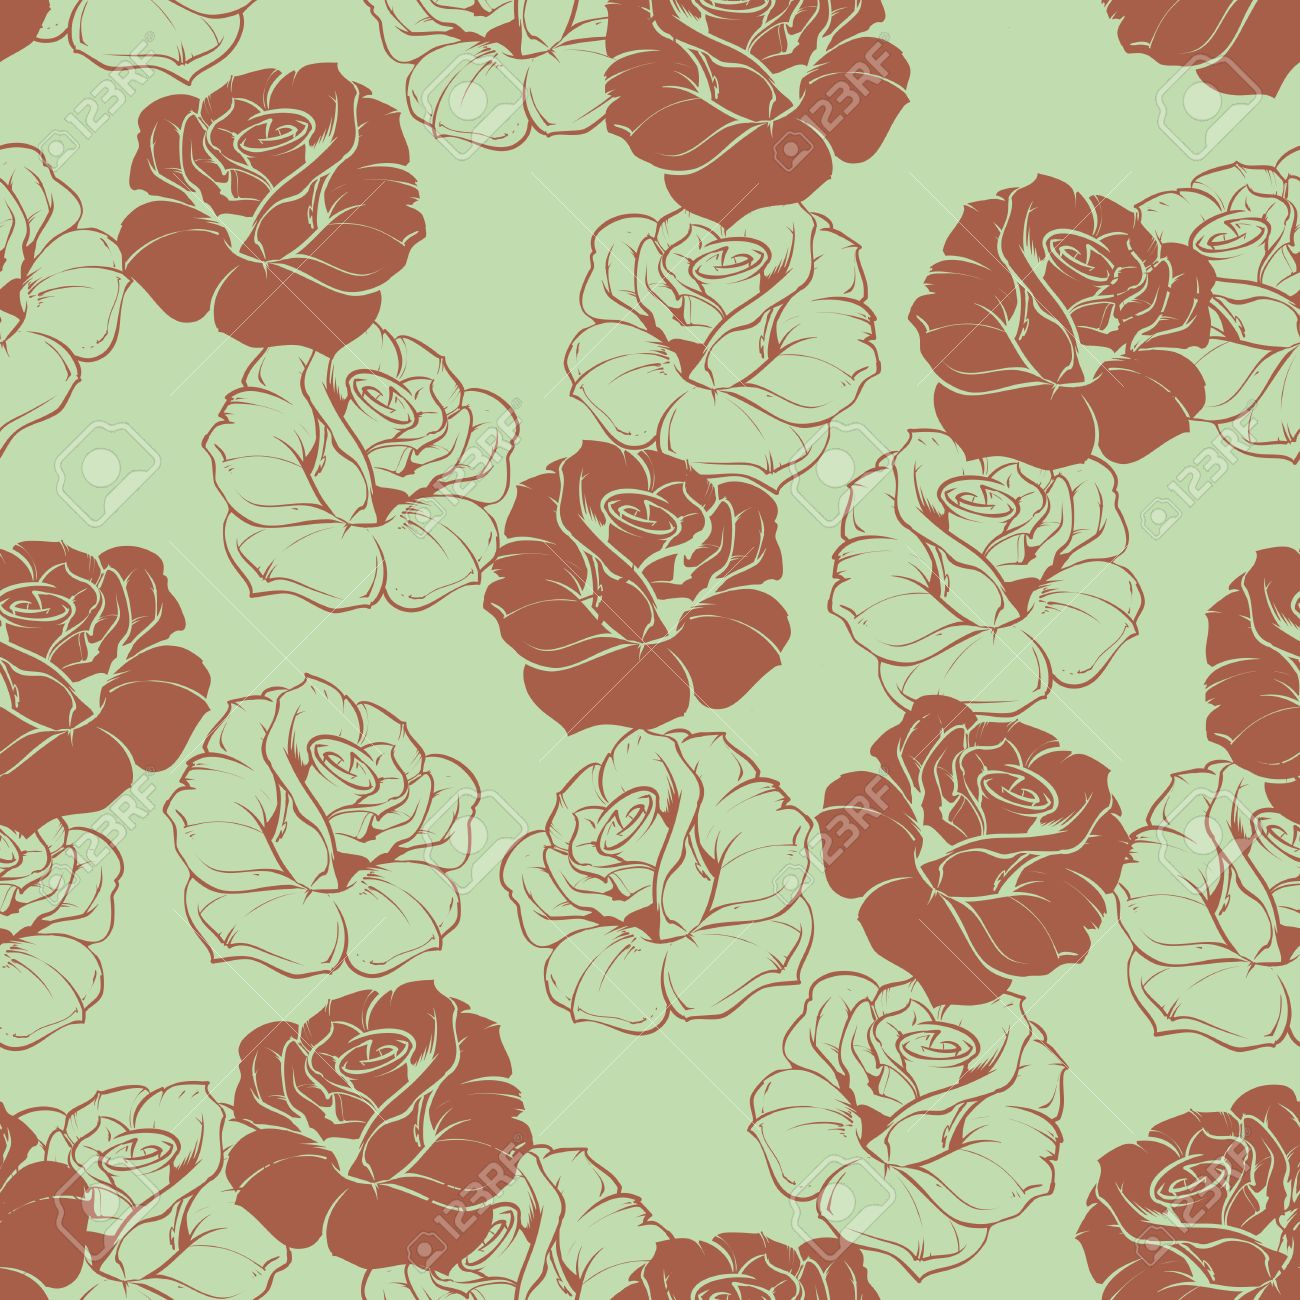 Seamless Vector Brown Retro Floral Pattern With Chocolate Roses